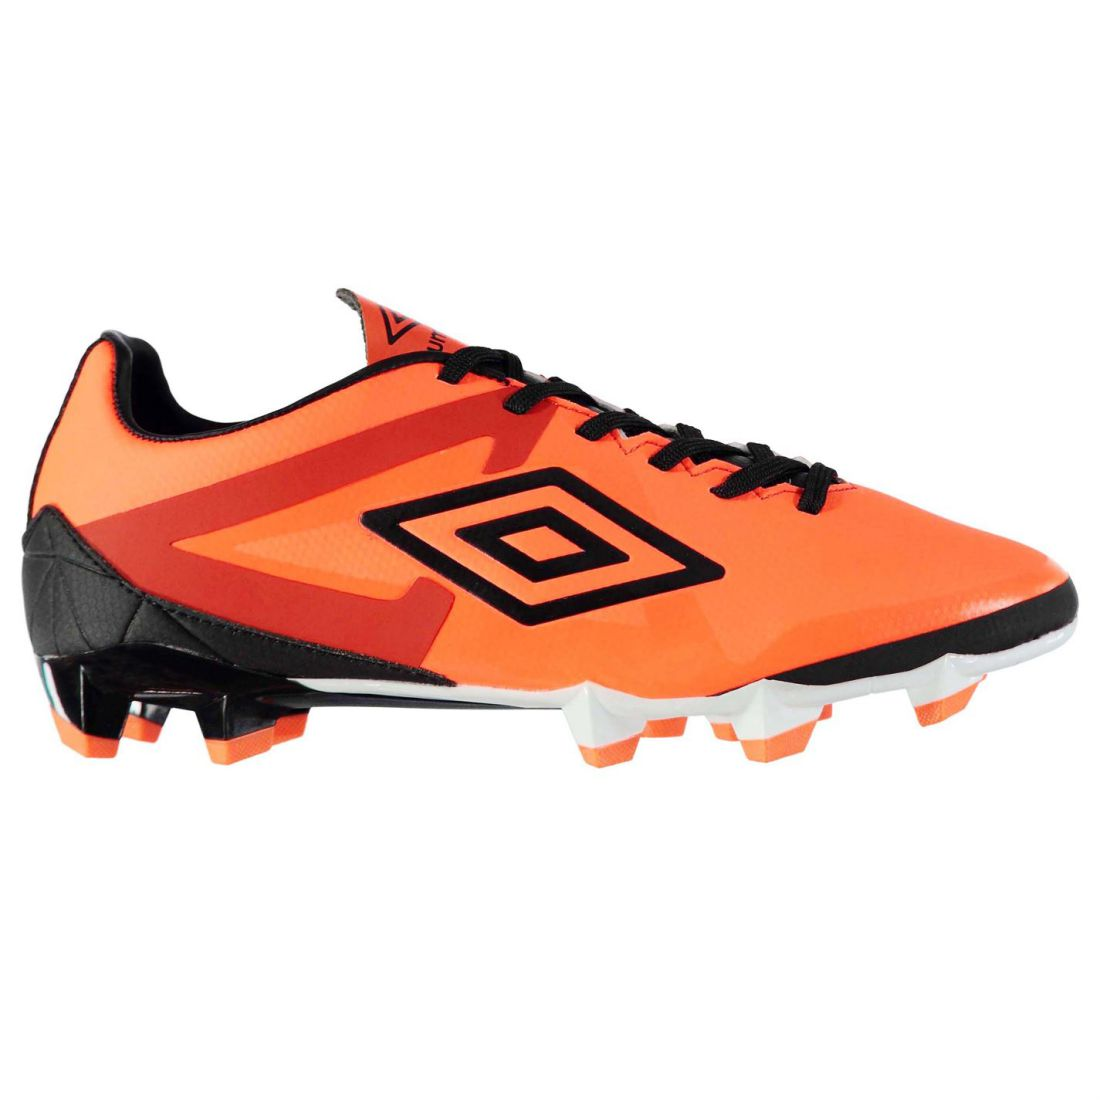 Image is loading Umbro-Mens-Velocita-Premier-HG-Football-Boots-Shoes- e97c52e0d2aa8